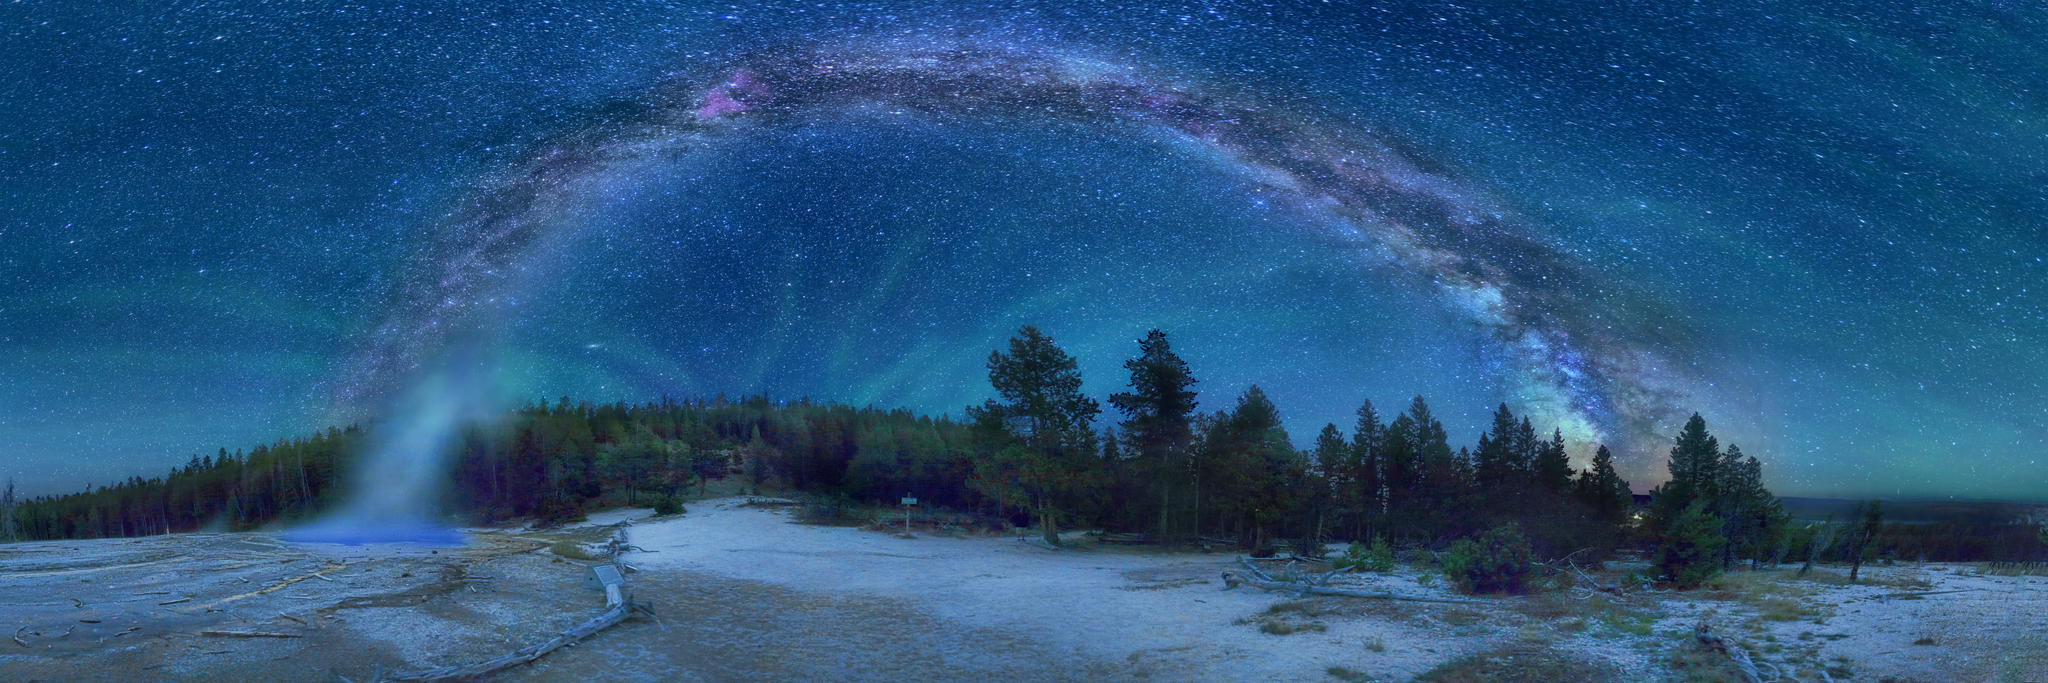 Milky way from Yellowstone Park-17